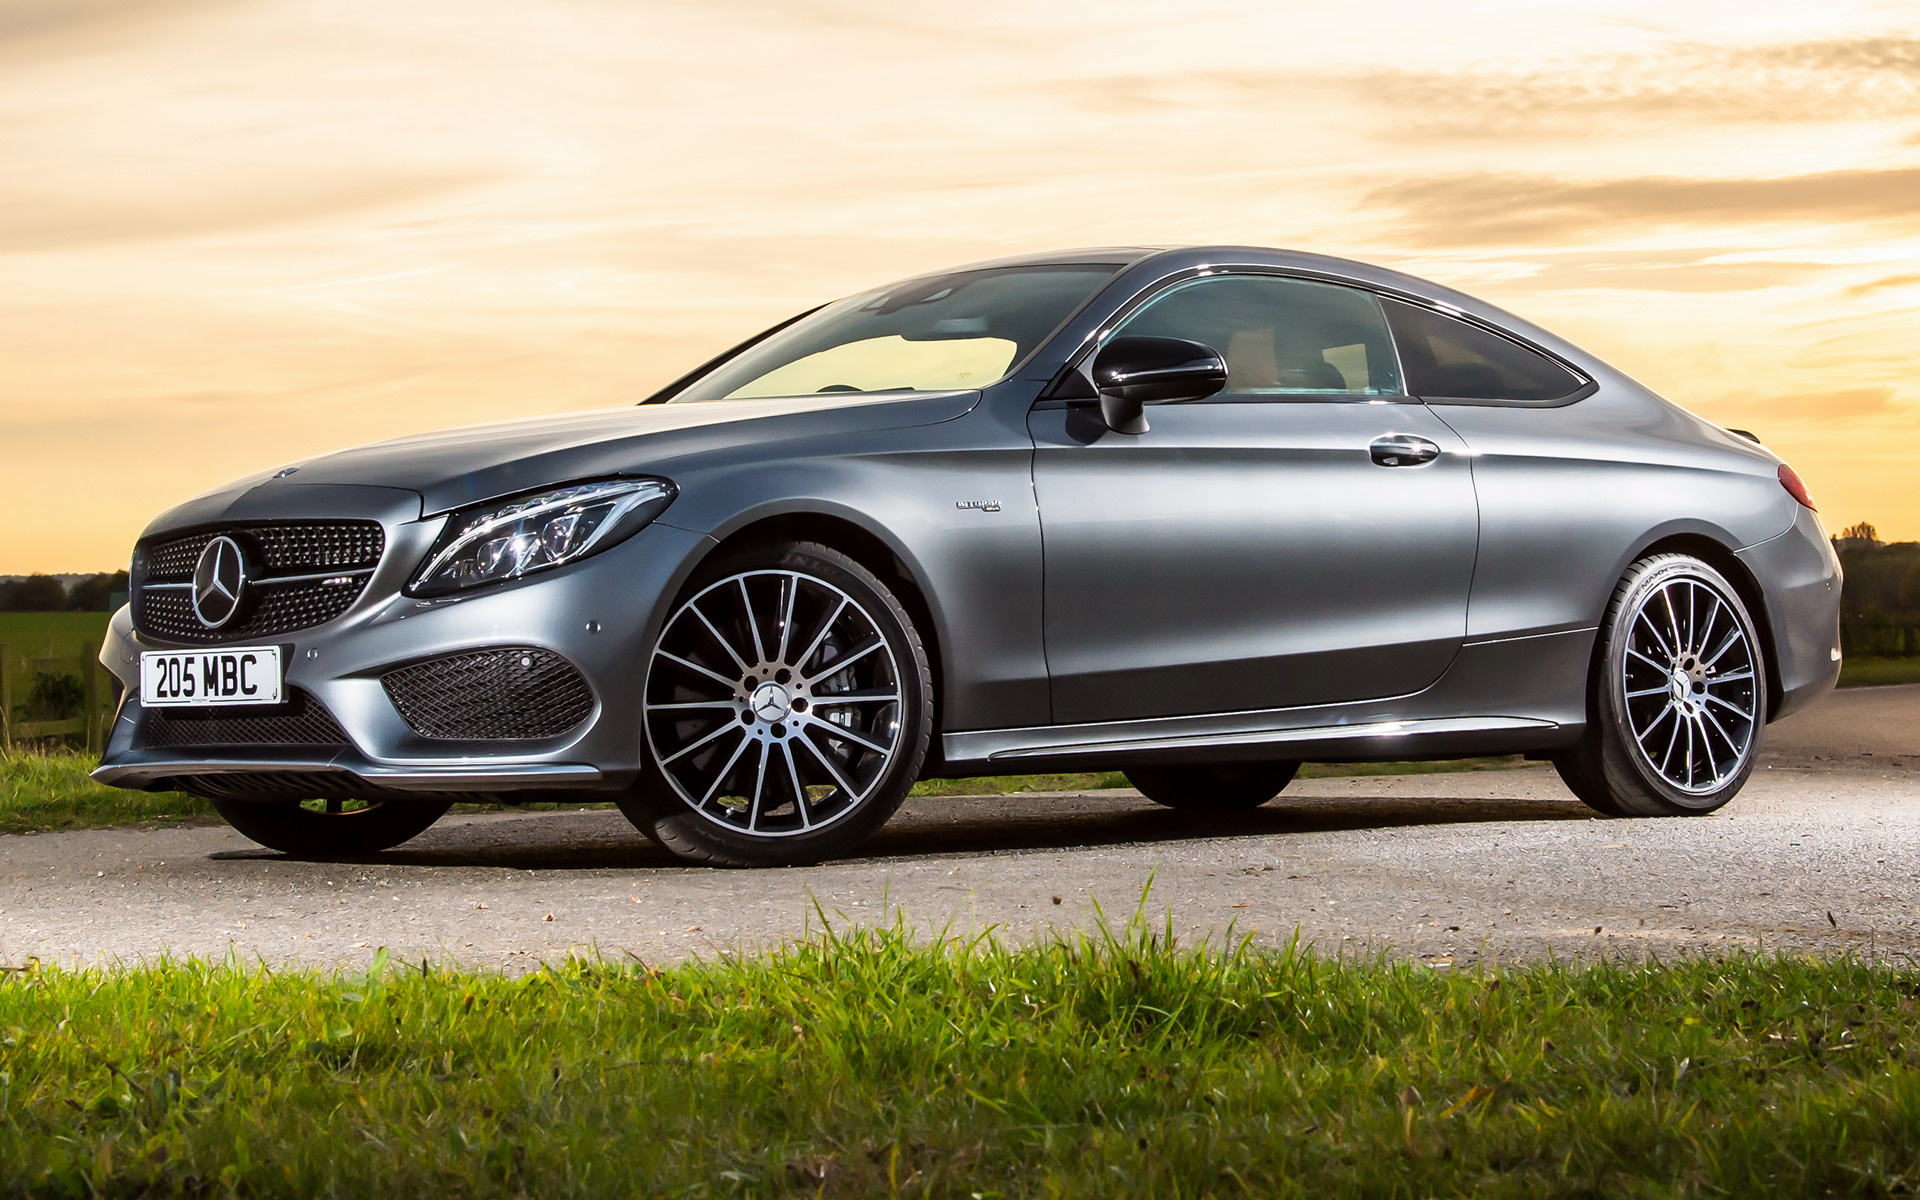 Mercedes C Class Coupe >> Mercedes-AMG C 43 Coupe (2016) UK Wallpapers and HD Images - Car Pixel